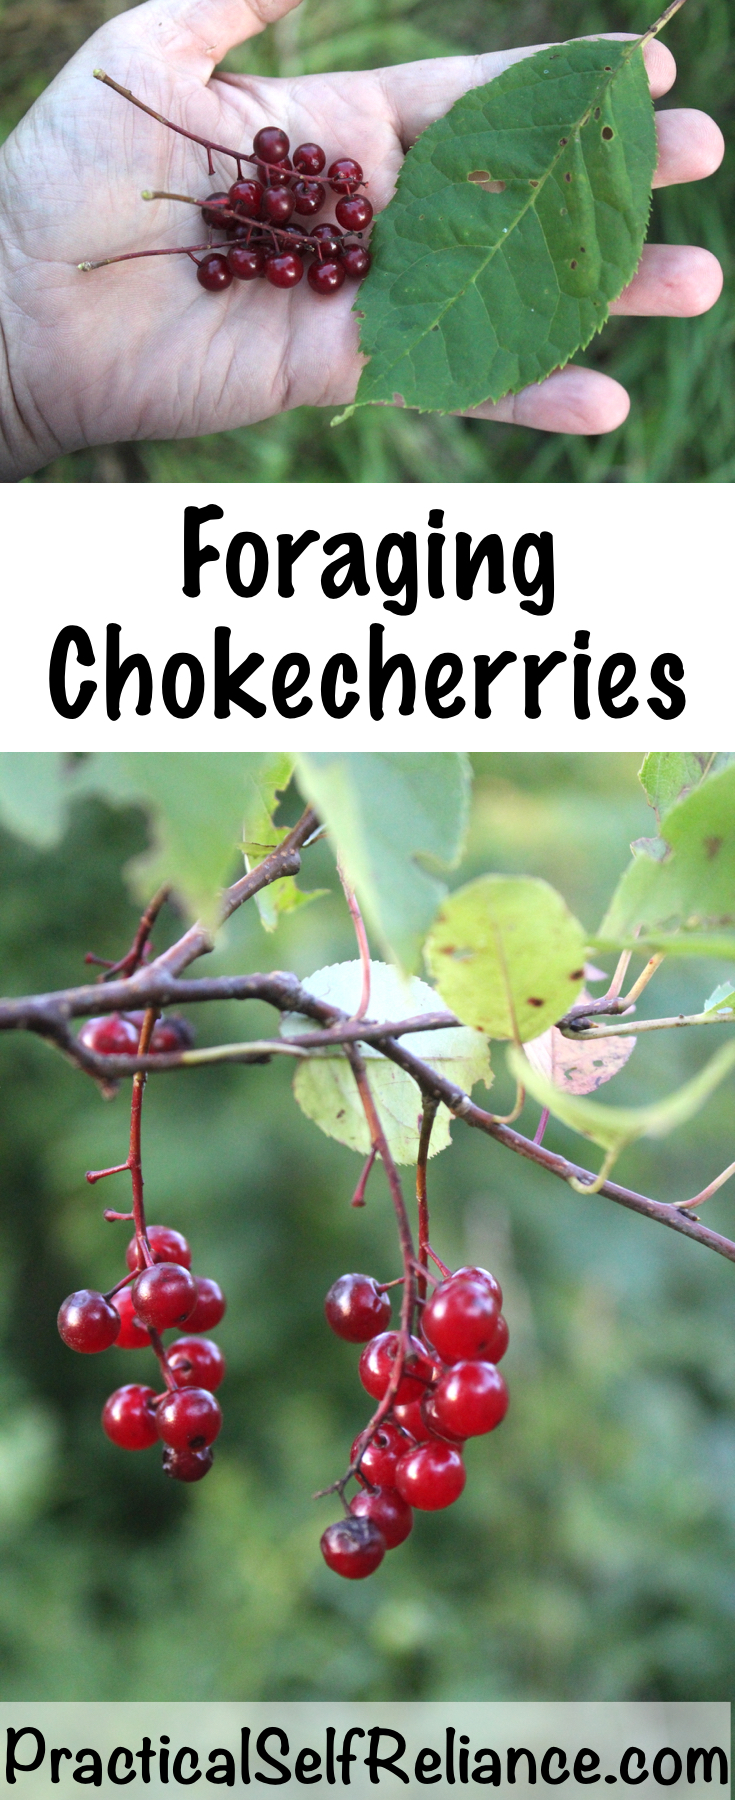 Foraging Chokecherries ~ Identifying and Using Chokecherries